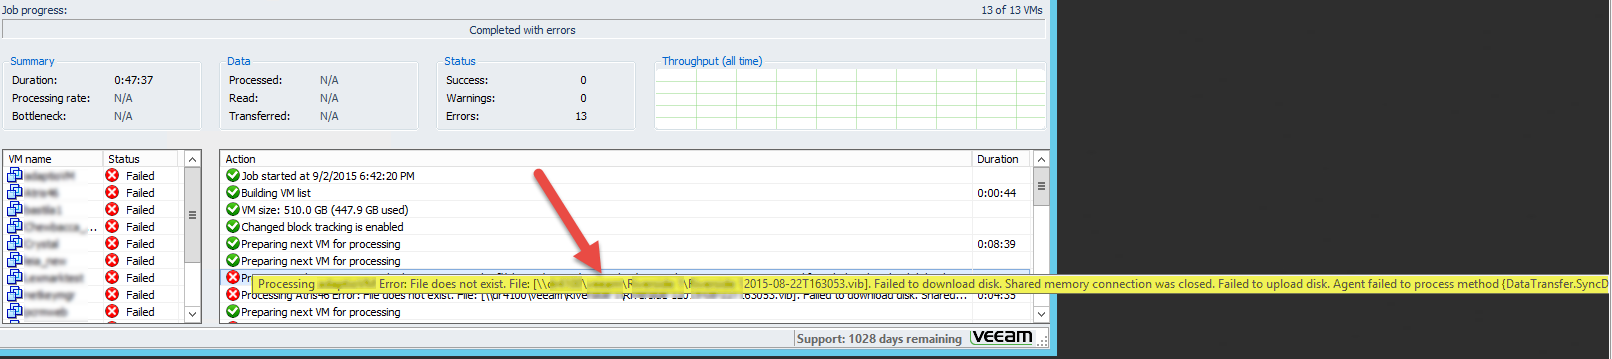 Veeam backup incremental backup job started to fail